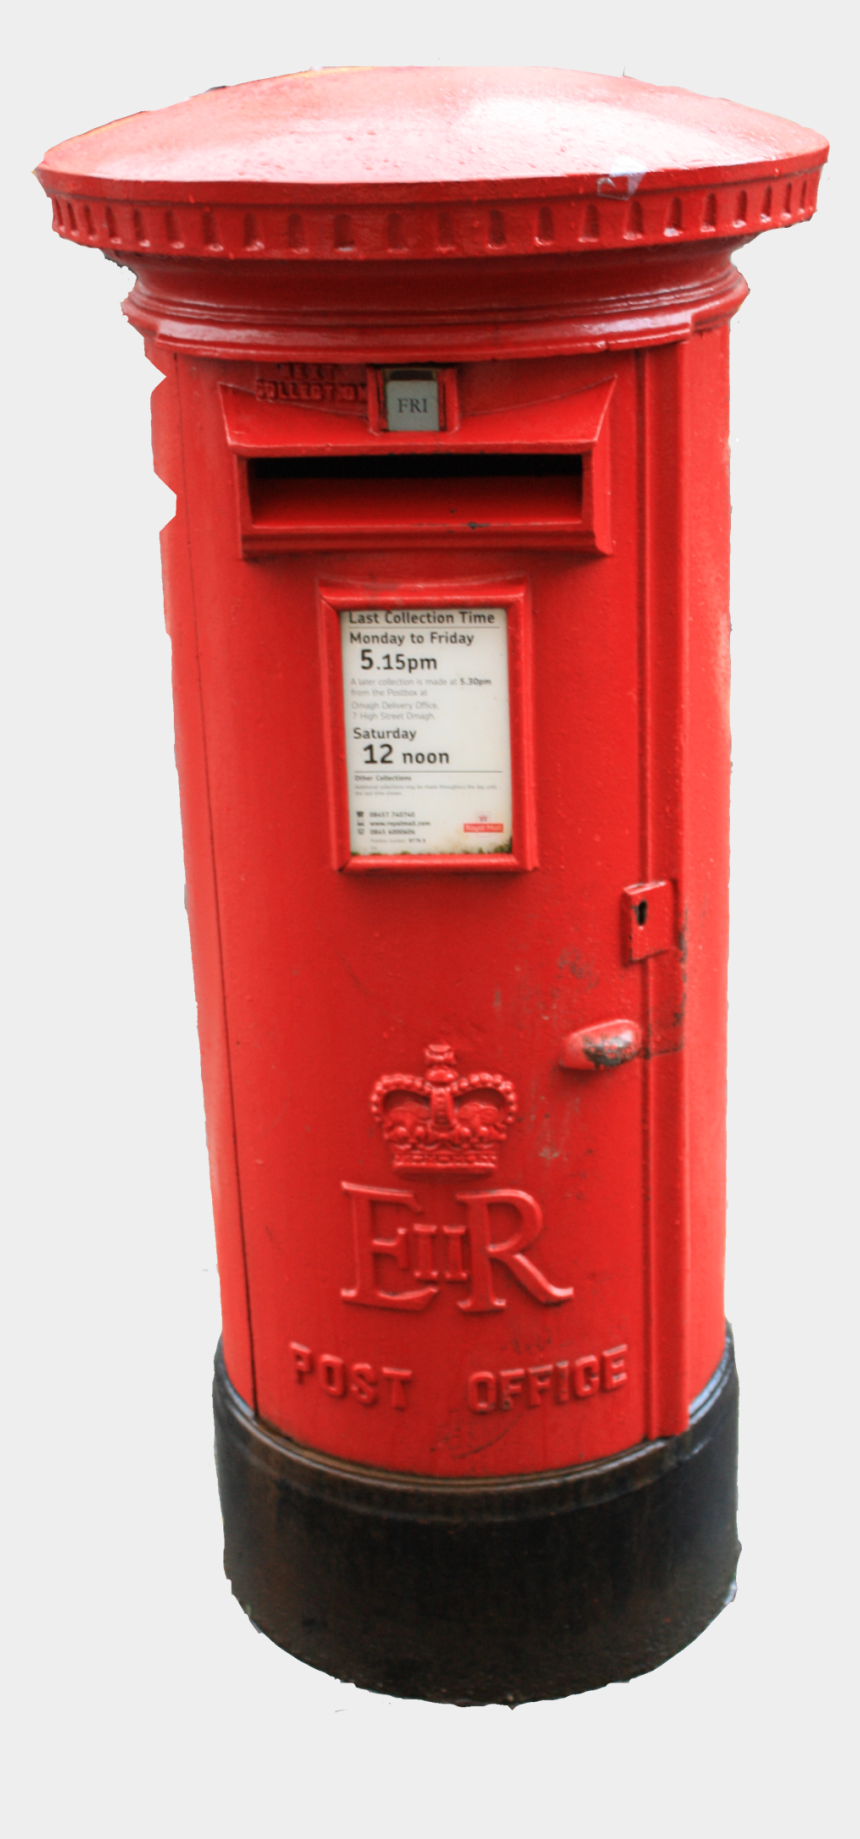 post office building clipart, Cartoons - Mailbox, Postbox Png Images Free Download - Postbox Png